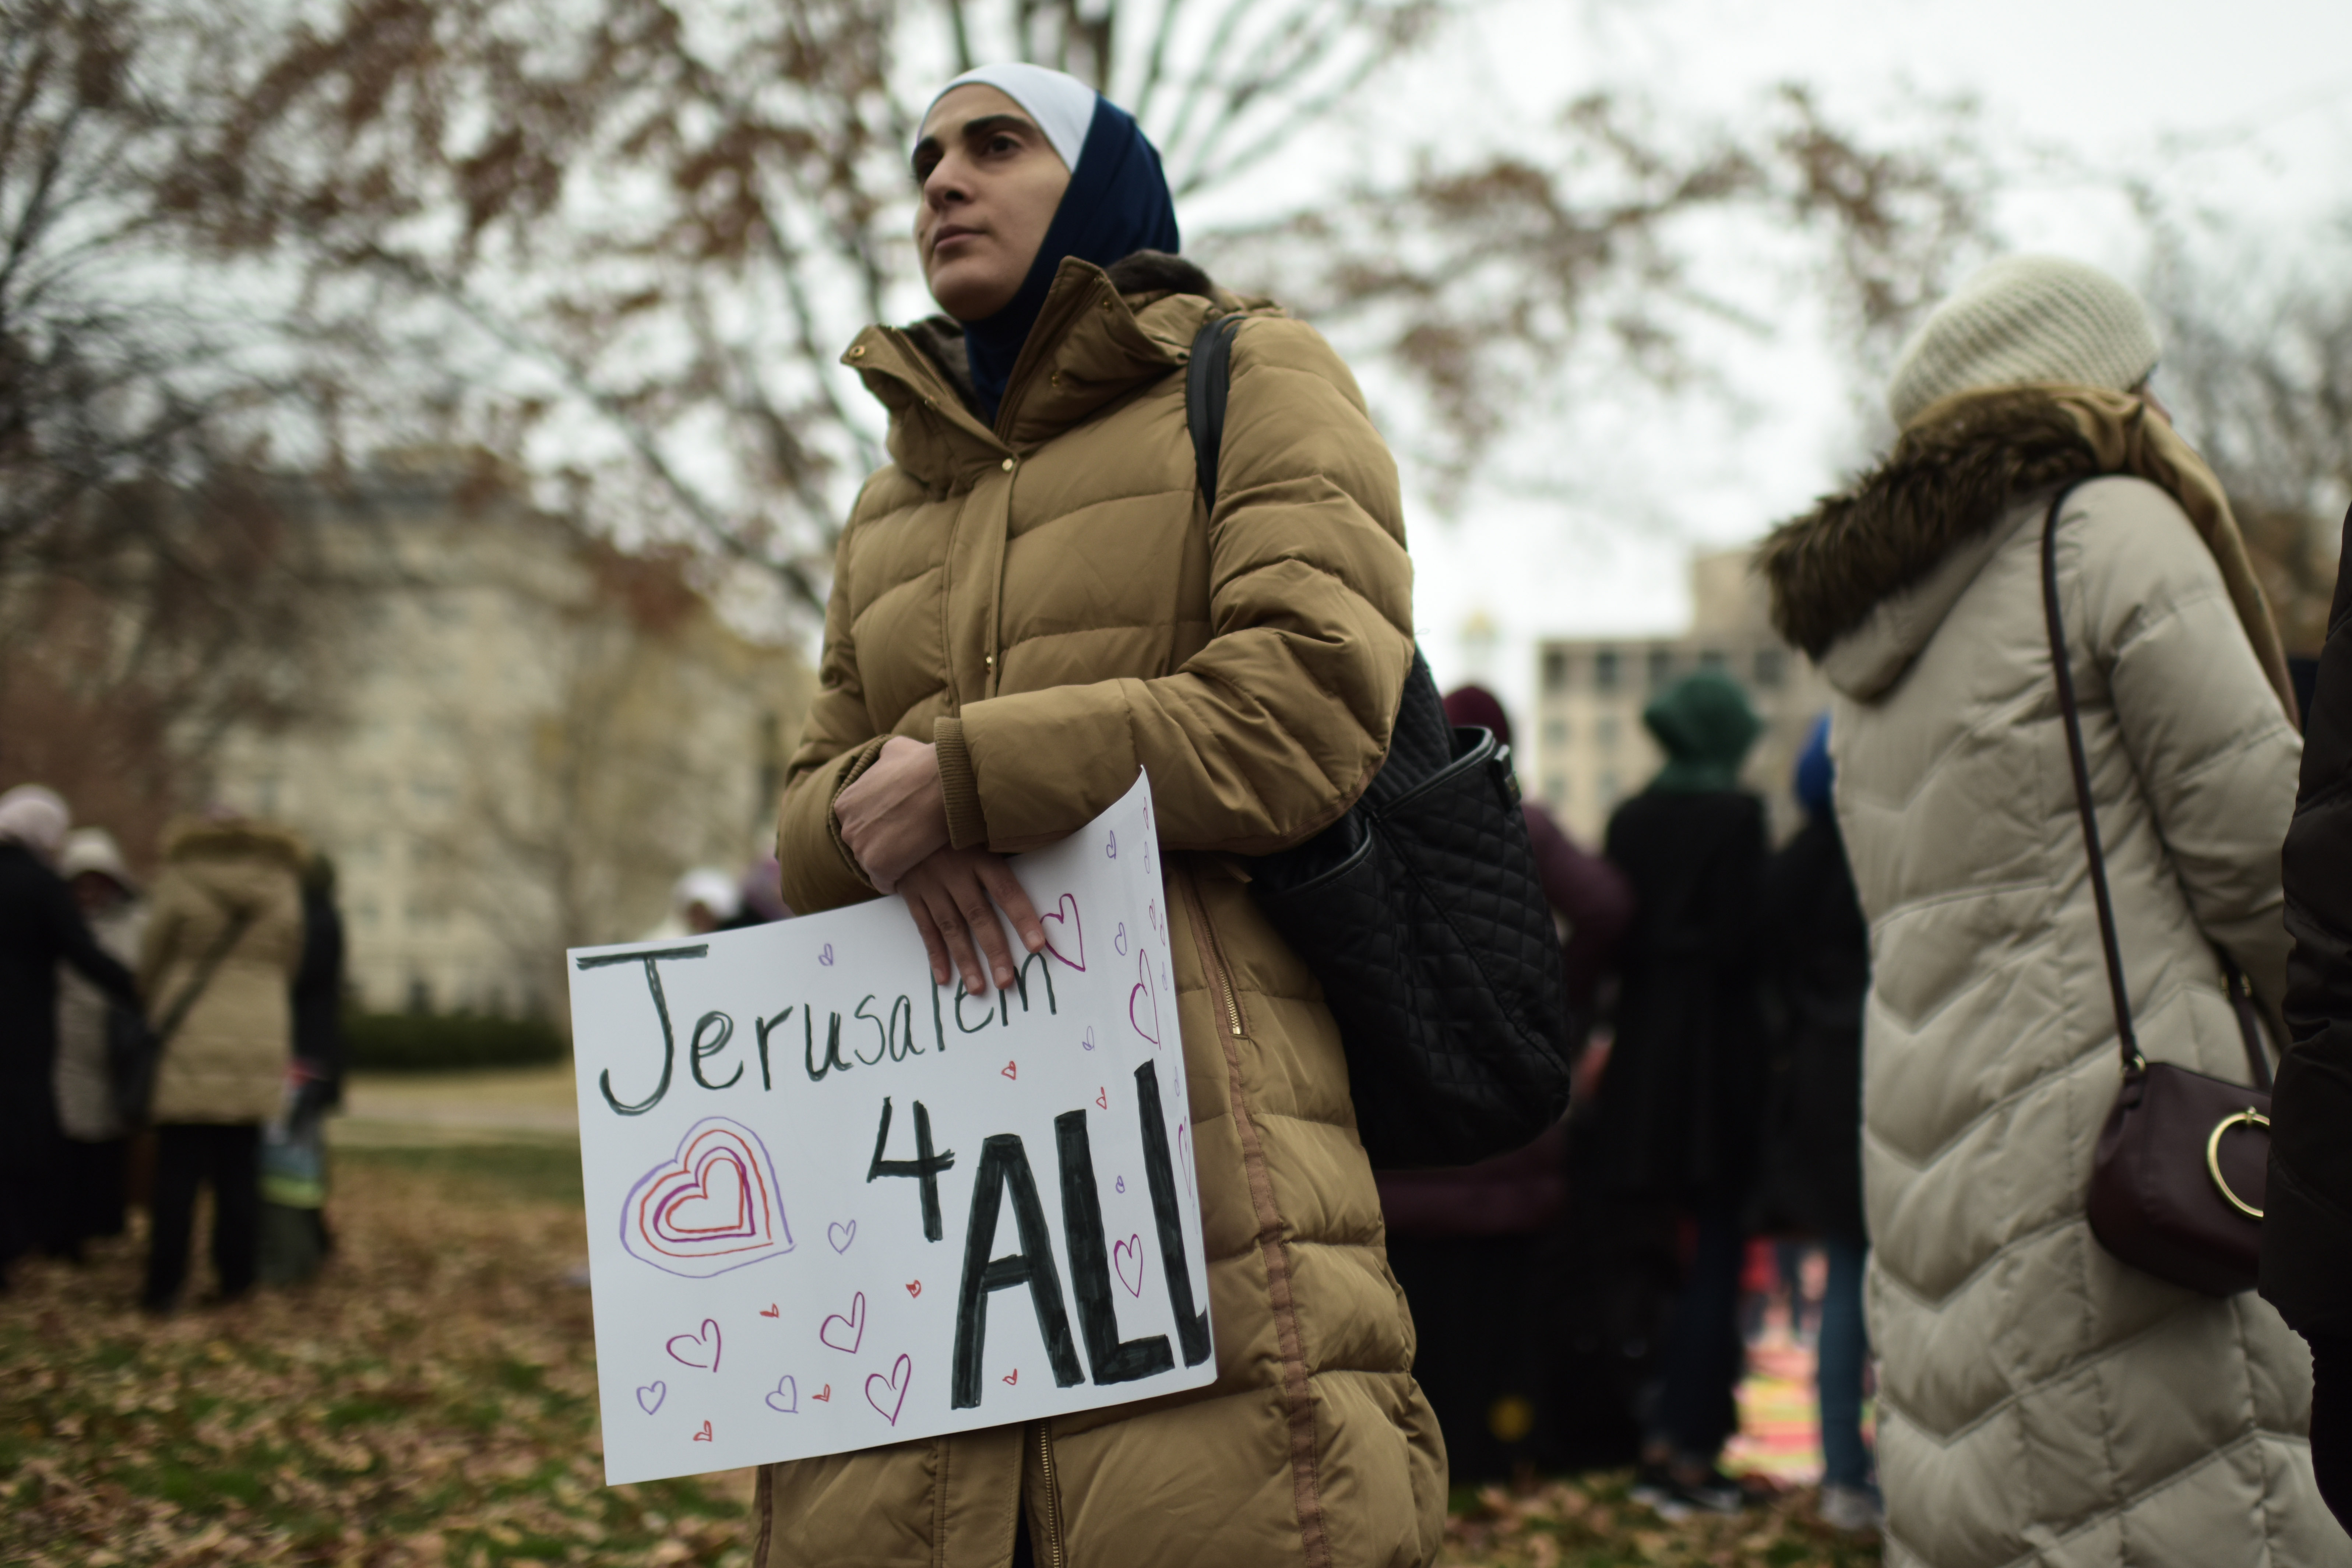 """A woman carries a poster reading """"Jerusalem for All"""" as Muslim worshippers gathered in front of the White House for Friday prayers in Washington D.C. to protest U.S. President Donald Trump's declaration of Jerusalem as Israel's capital, Dec. 08, 2017..."""